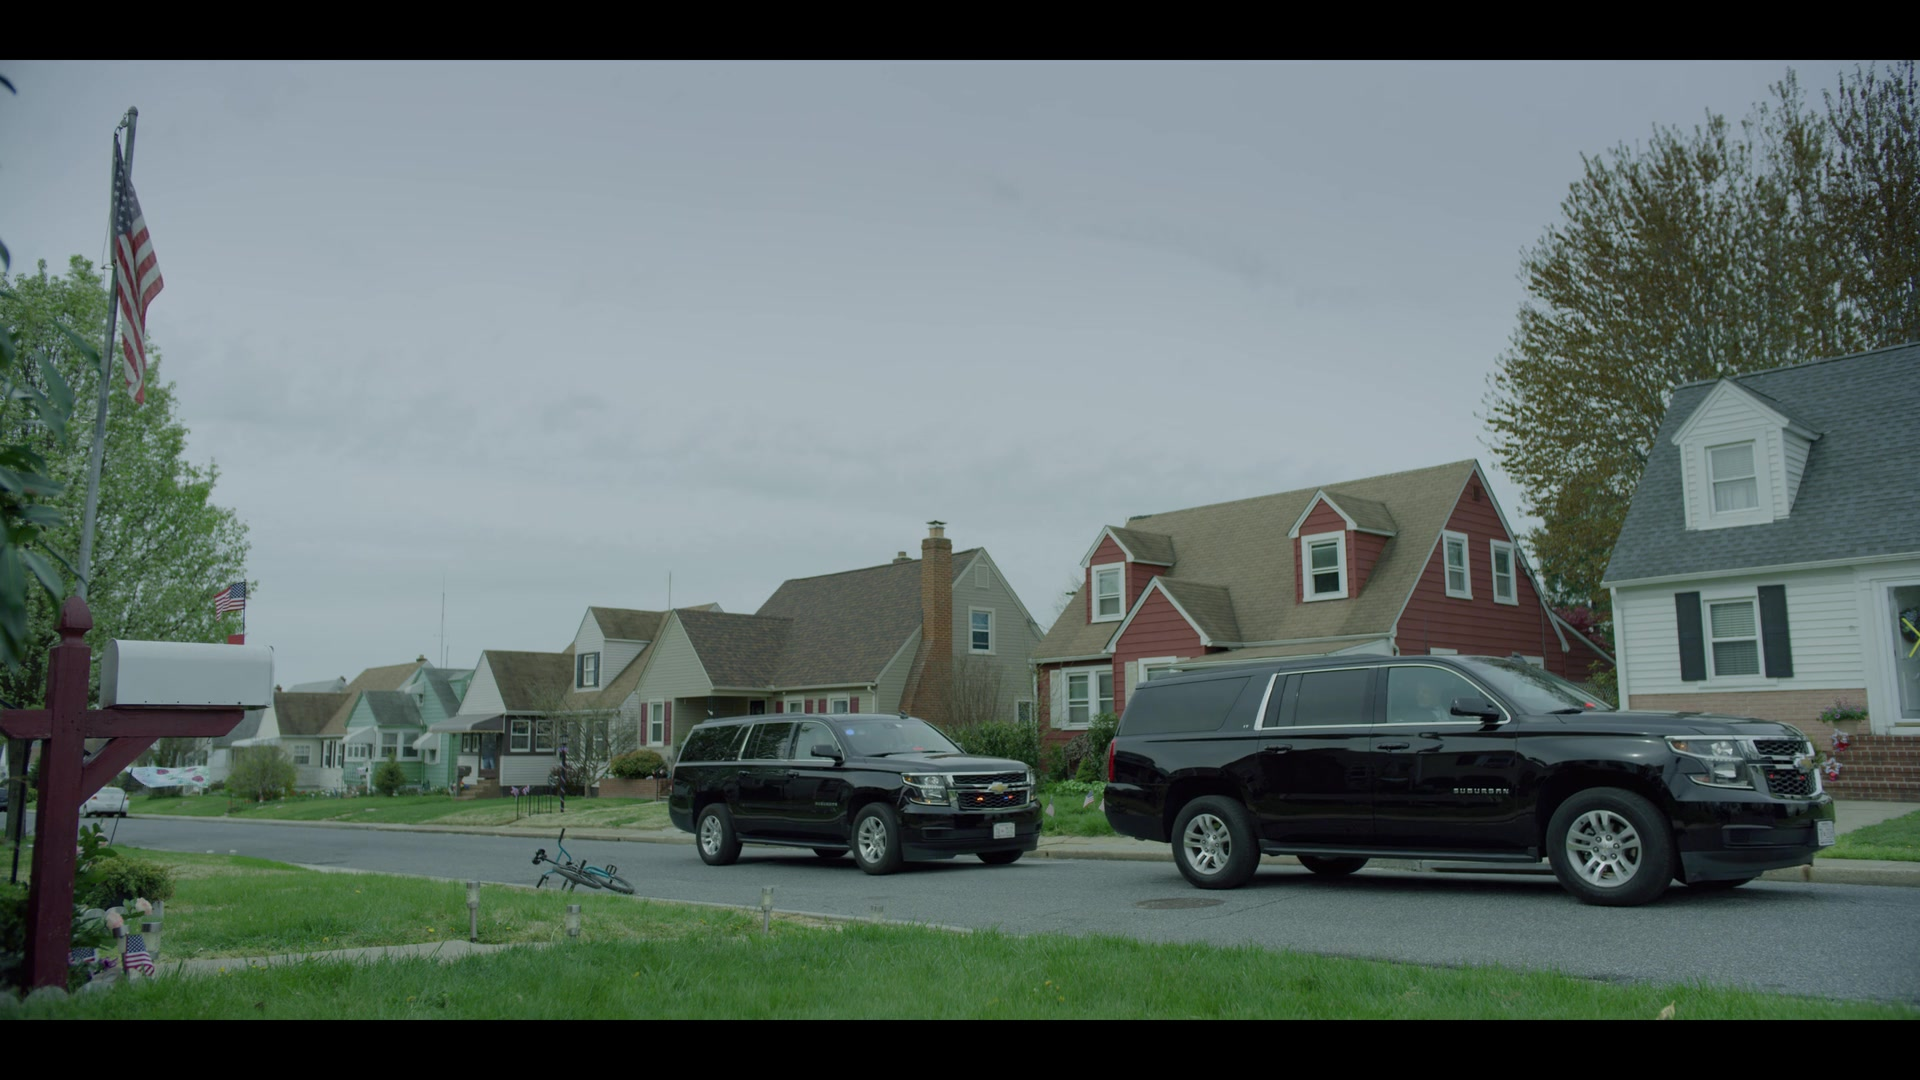 Chevrolet Suburban Sport Utility Vehicles In House Of Cards Season 6